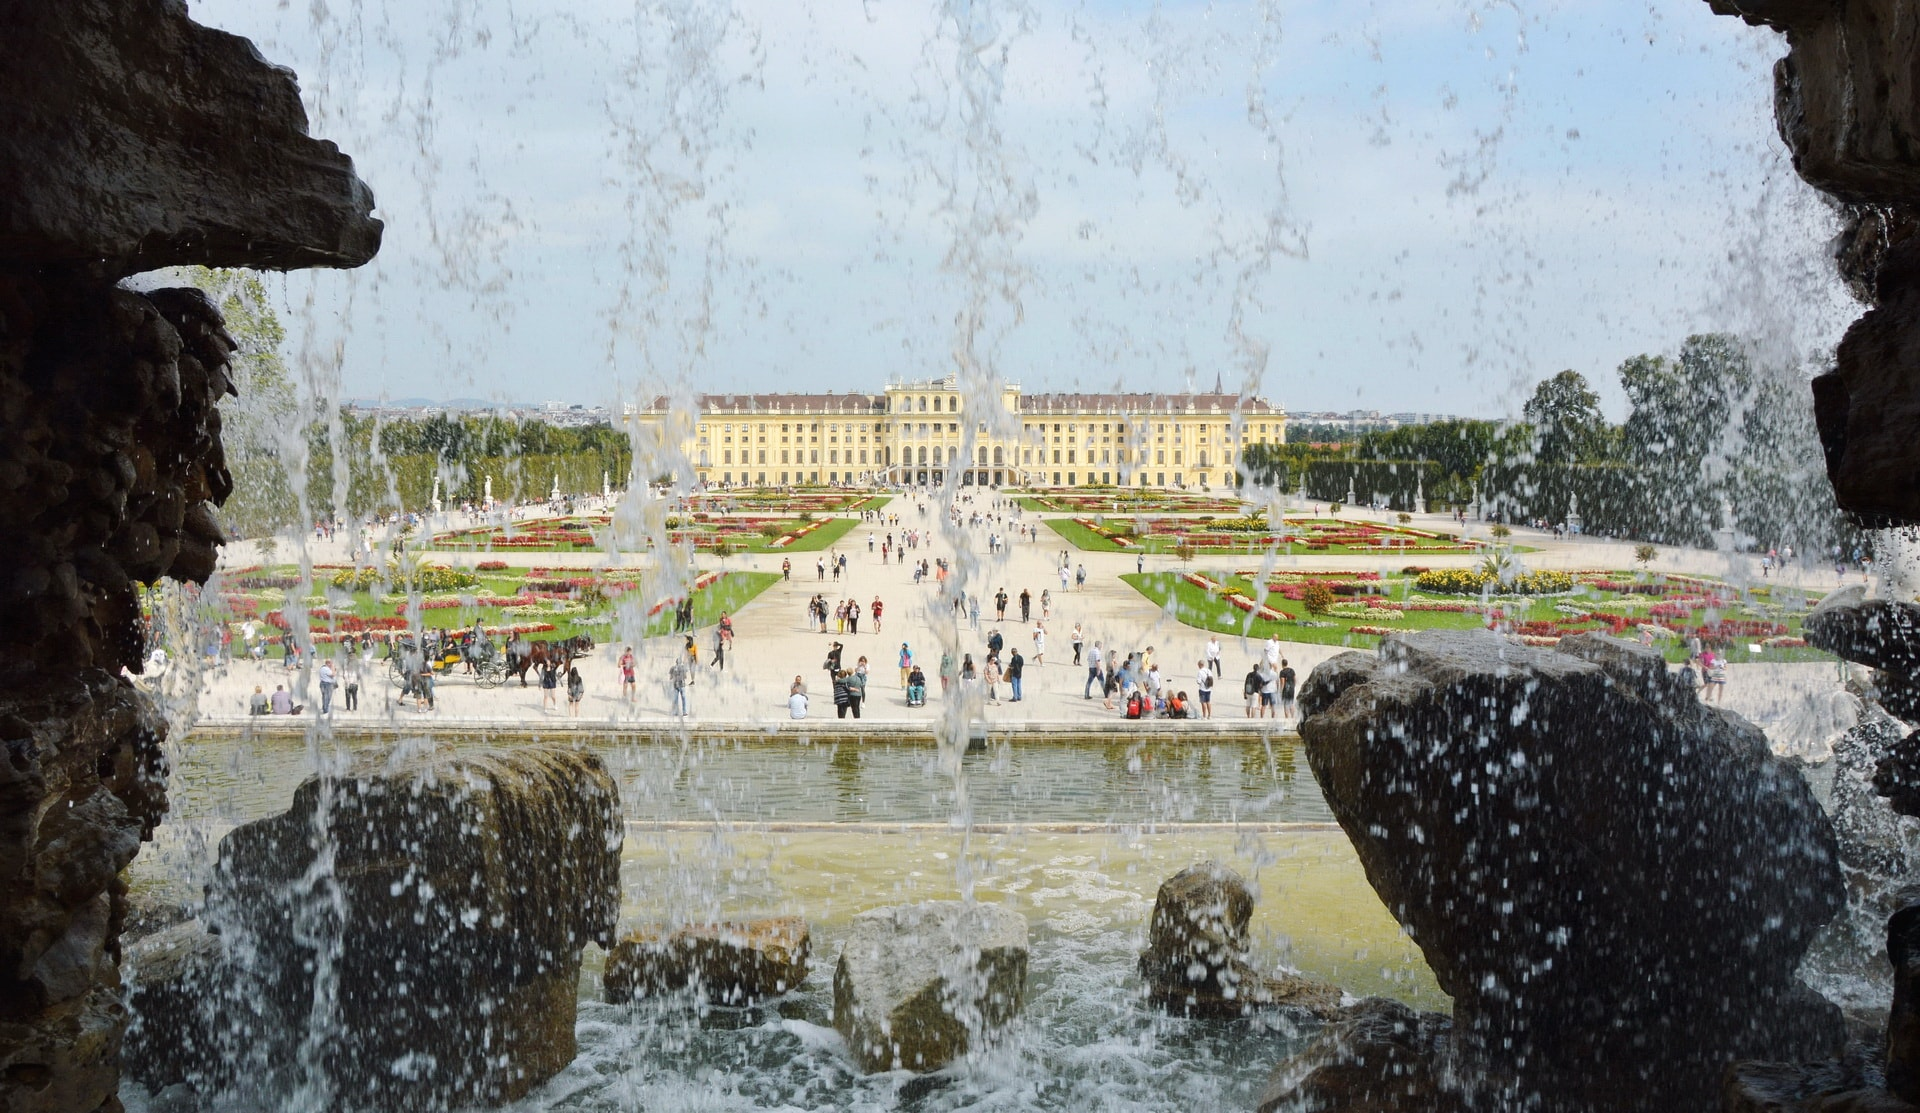 View of the Schönbrunn Palace from the gardens